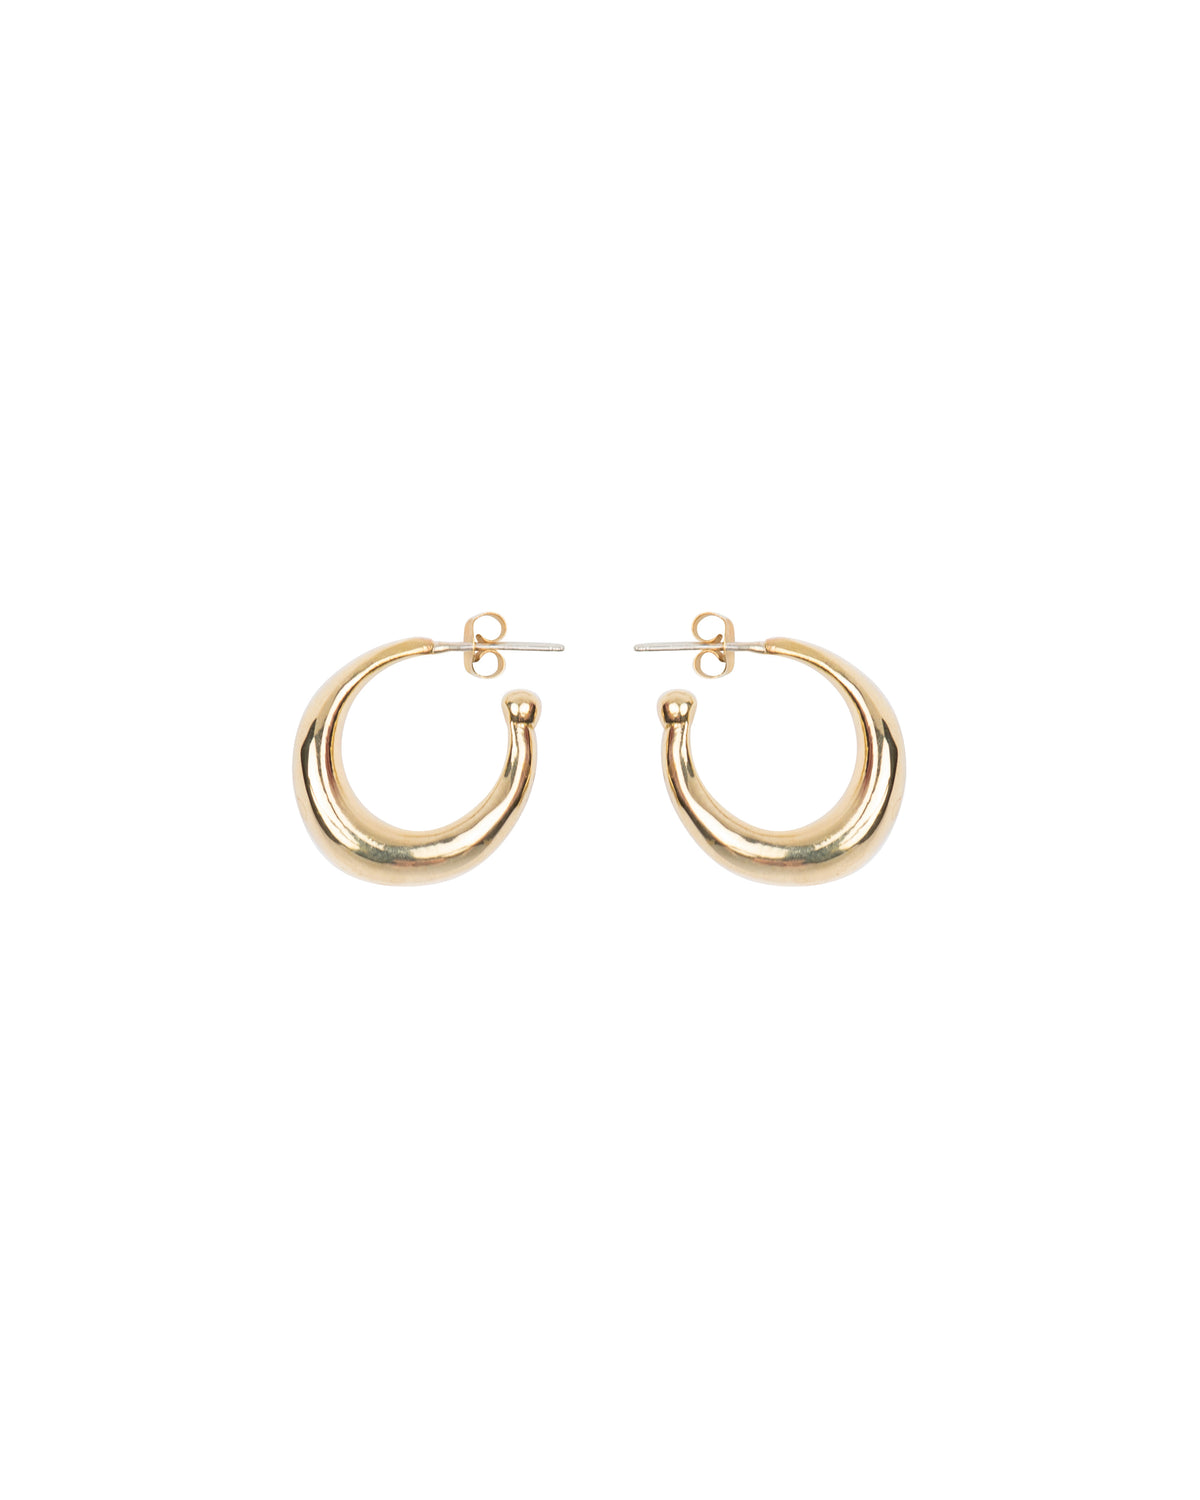 THICK ROUNDED HOOPS SMALL